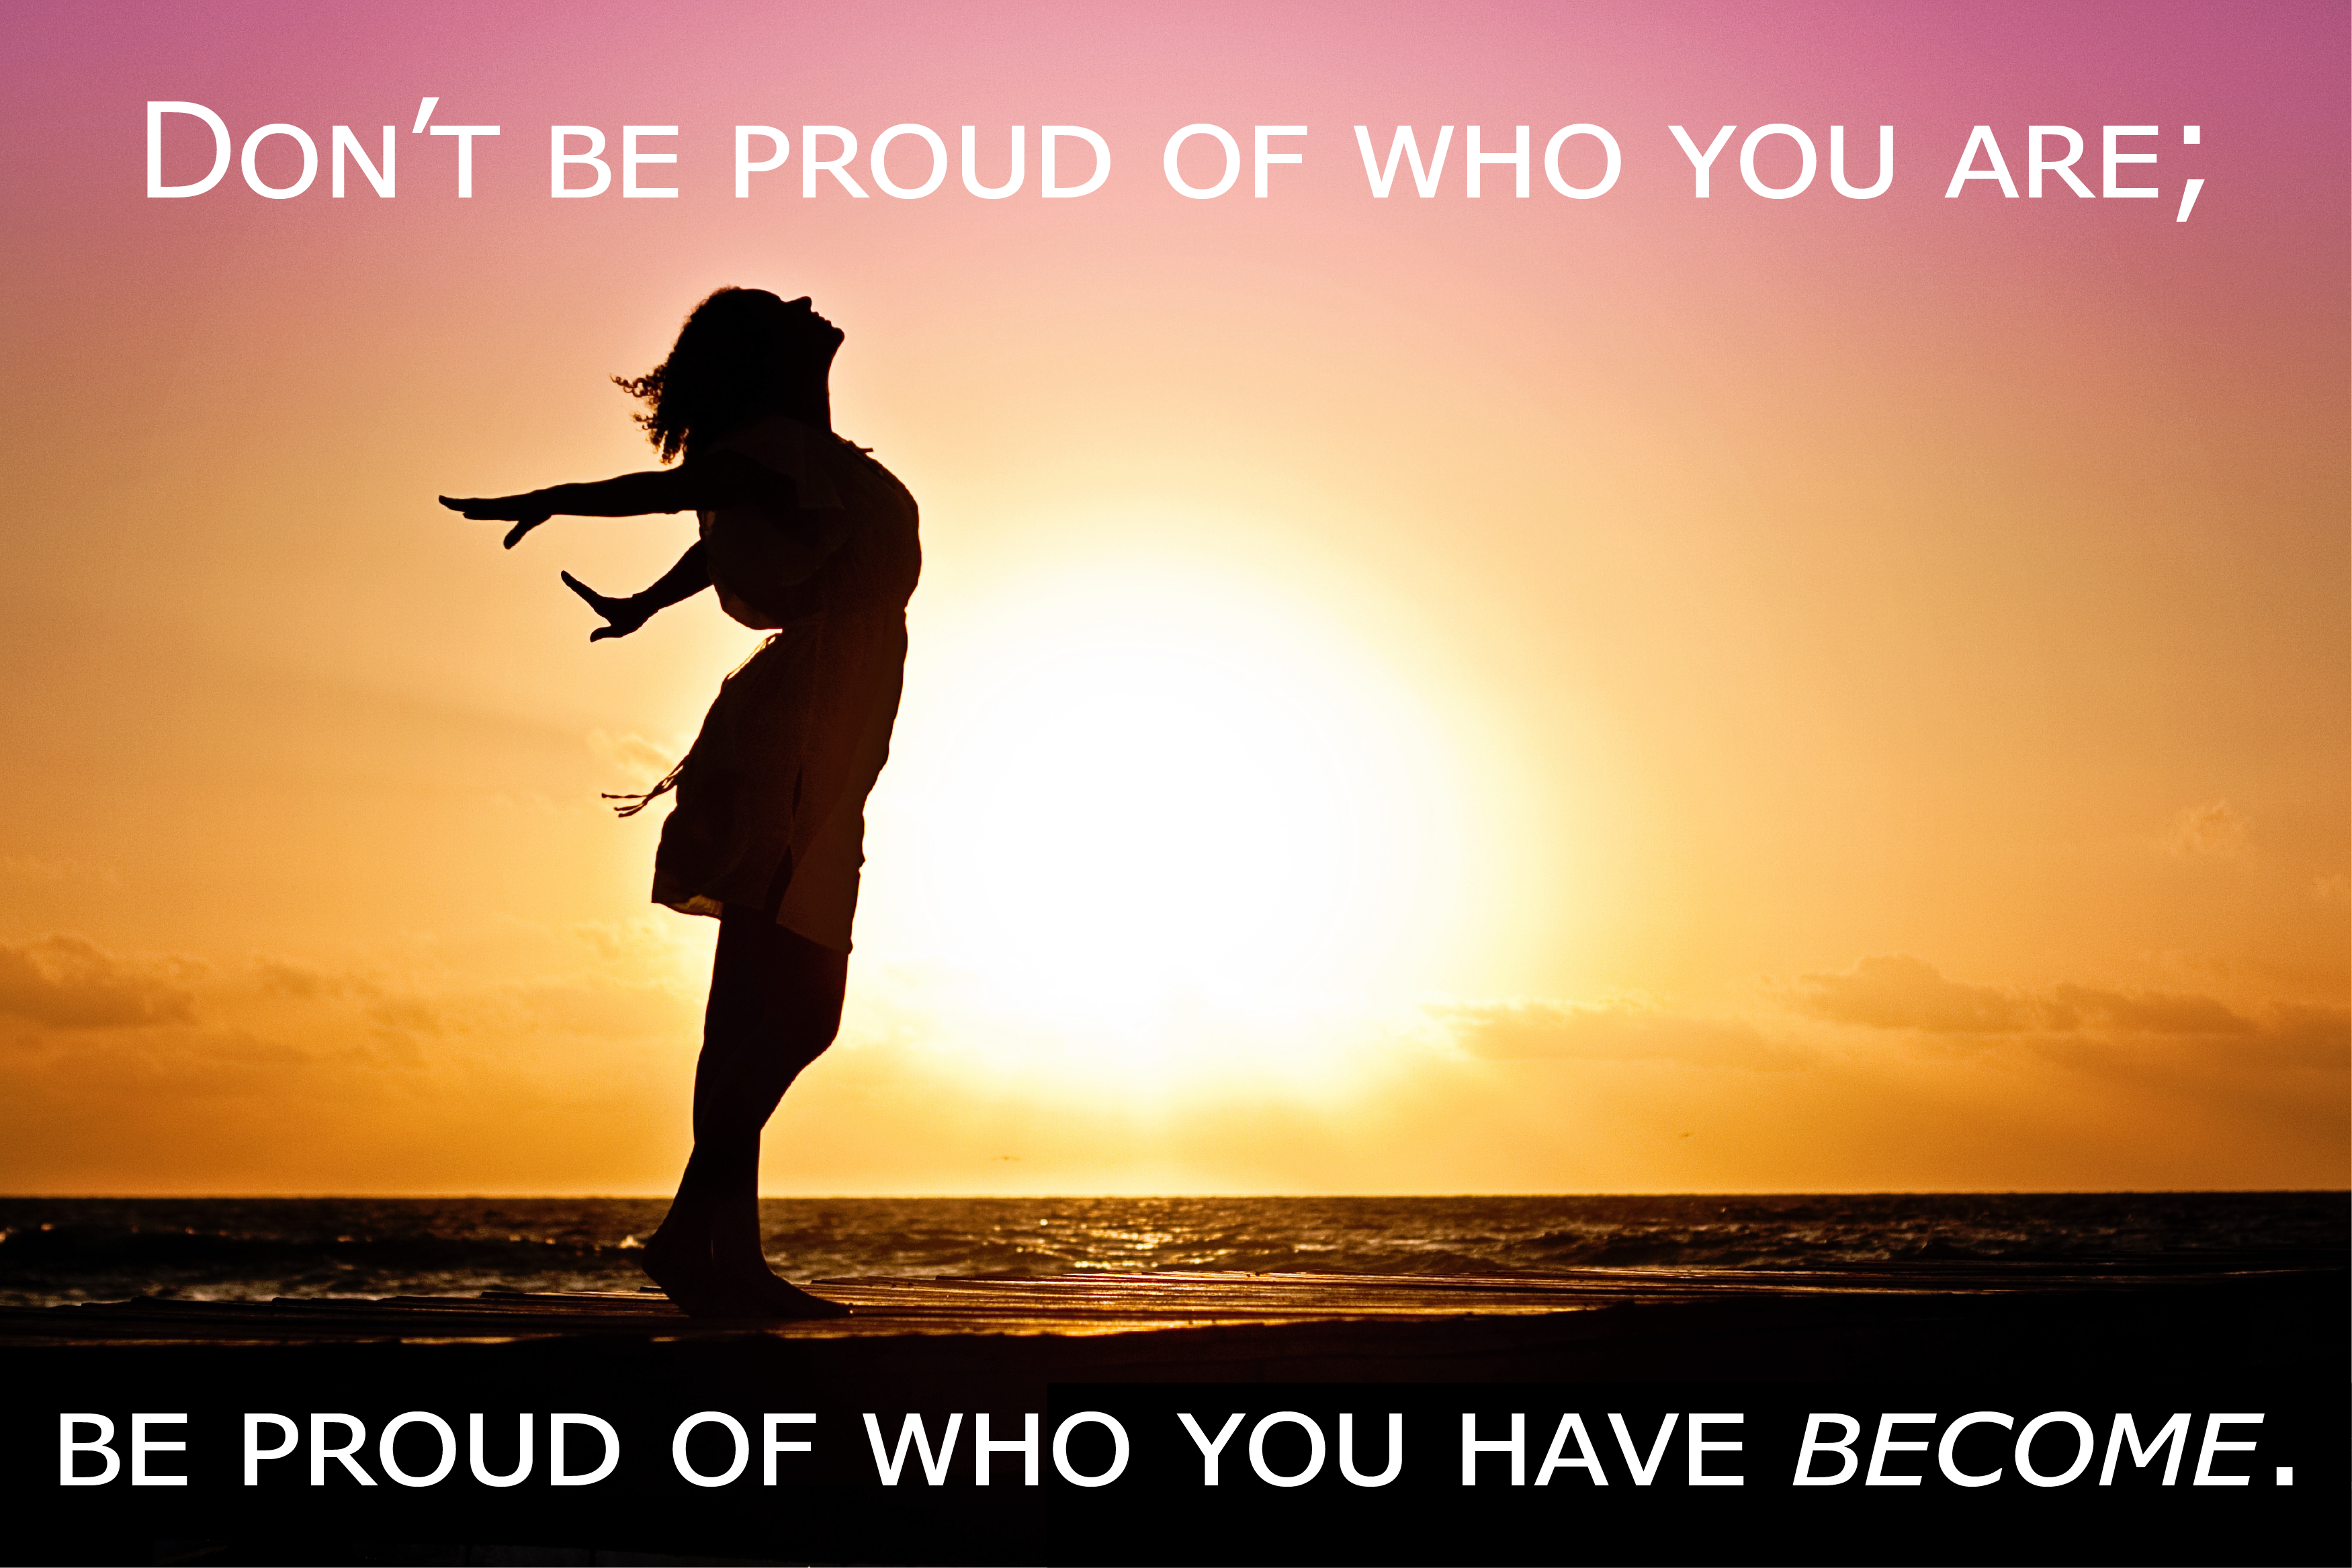 [Image] Don't be proud of who you are…